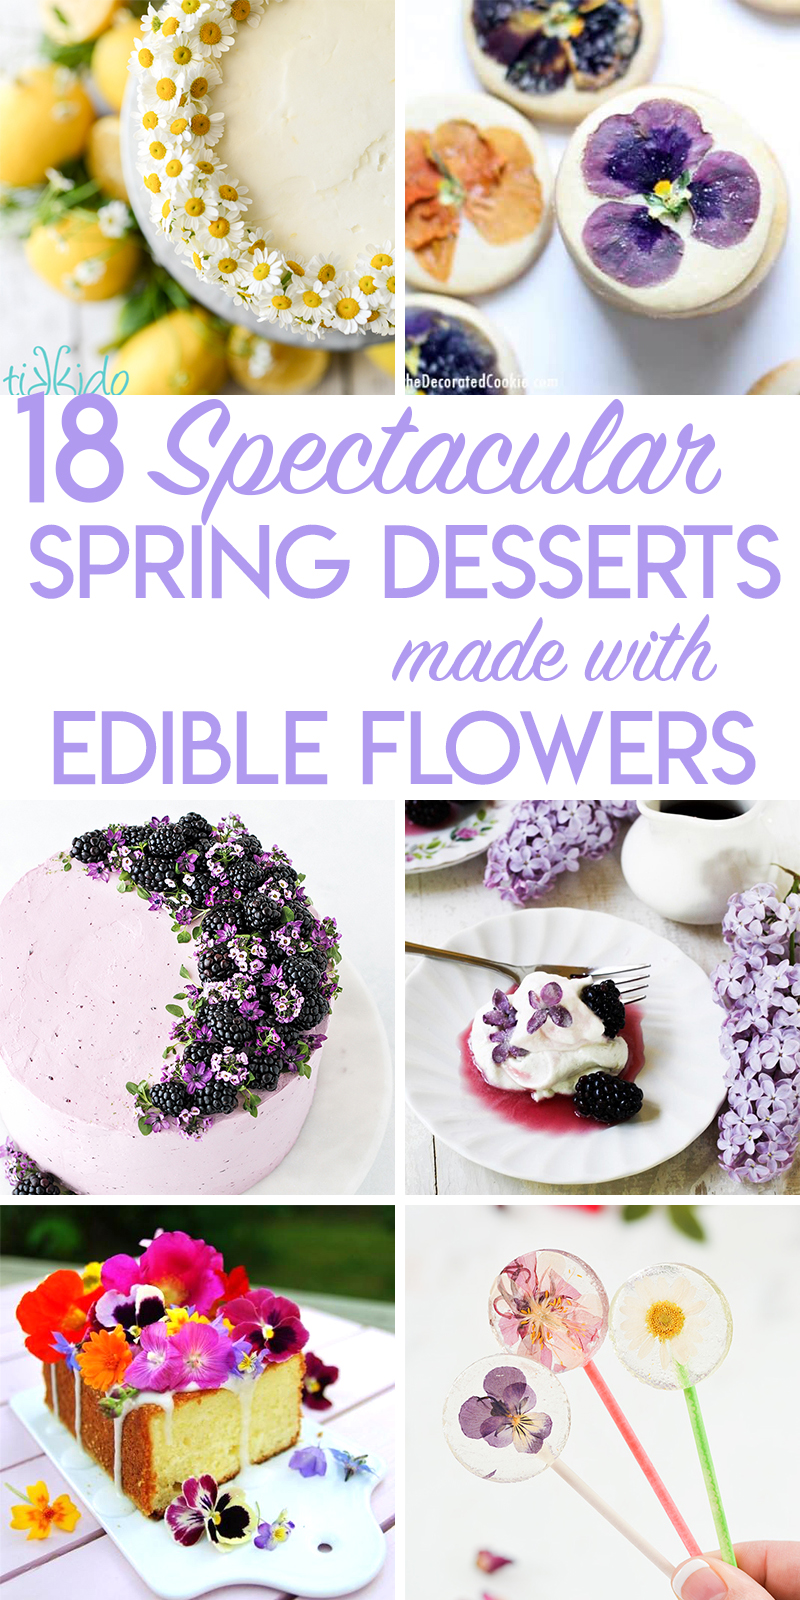 18 spectacular spring dessert recipes using edible flowers random collage of spring dessert recipes using edible flowers optimized for pinterest mightylinksfo